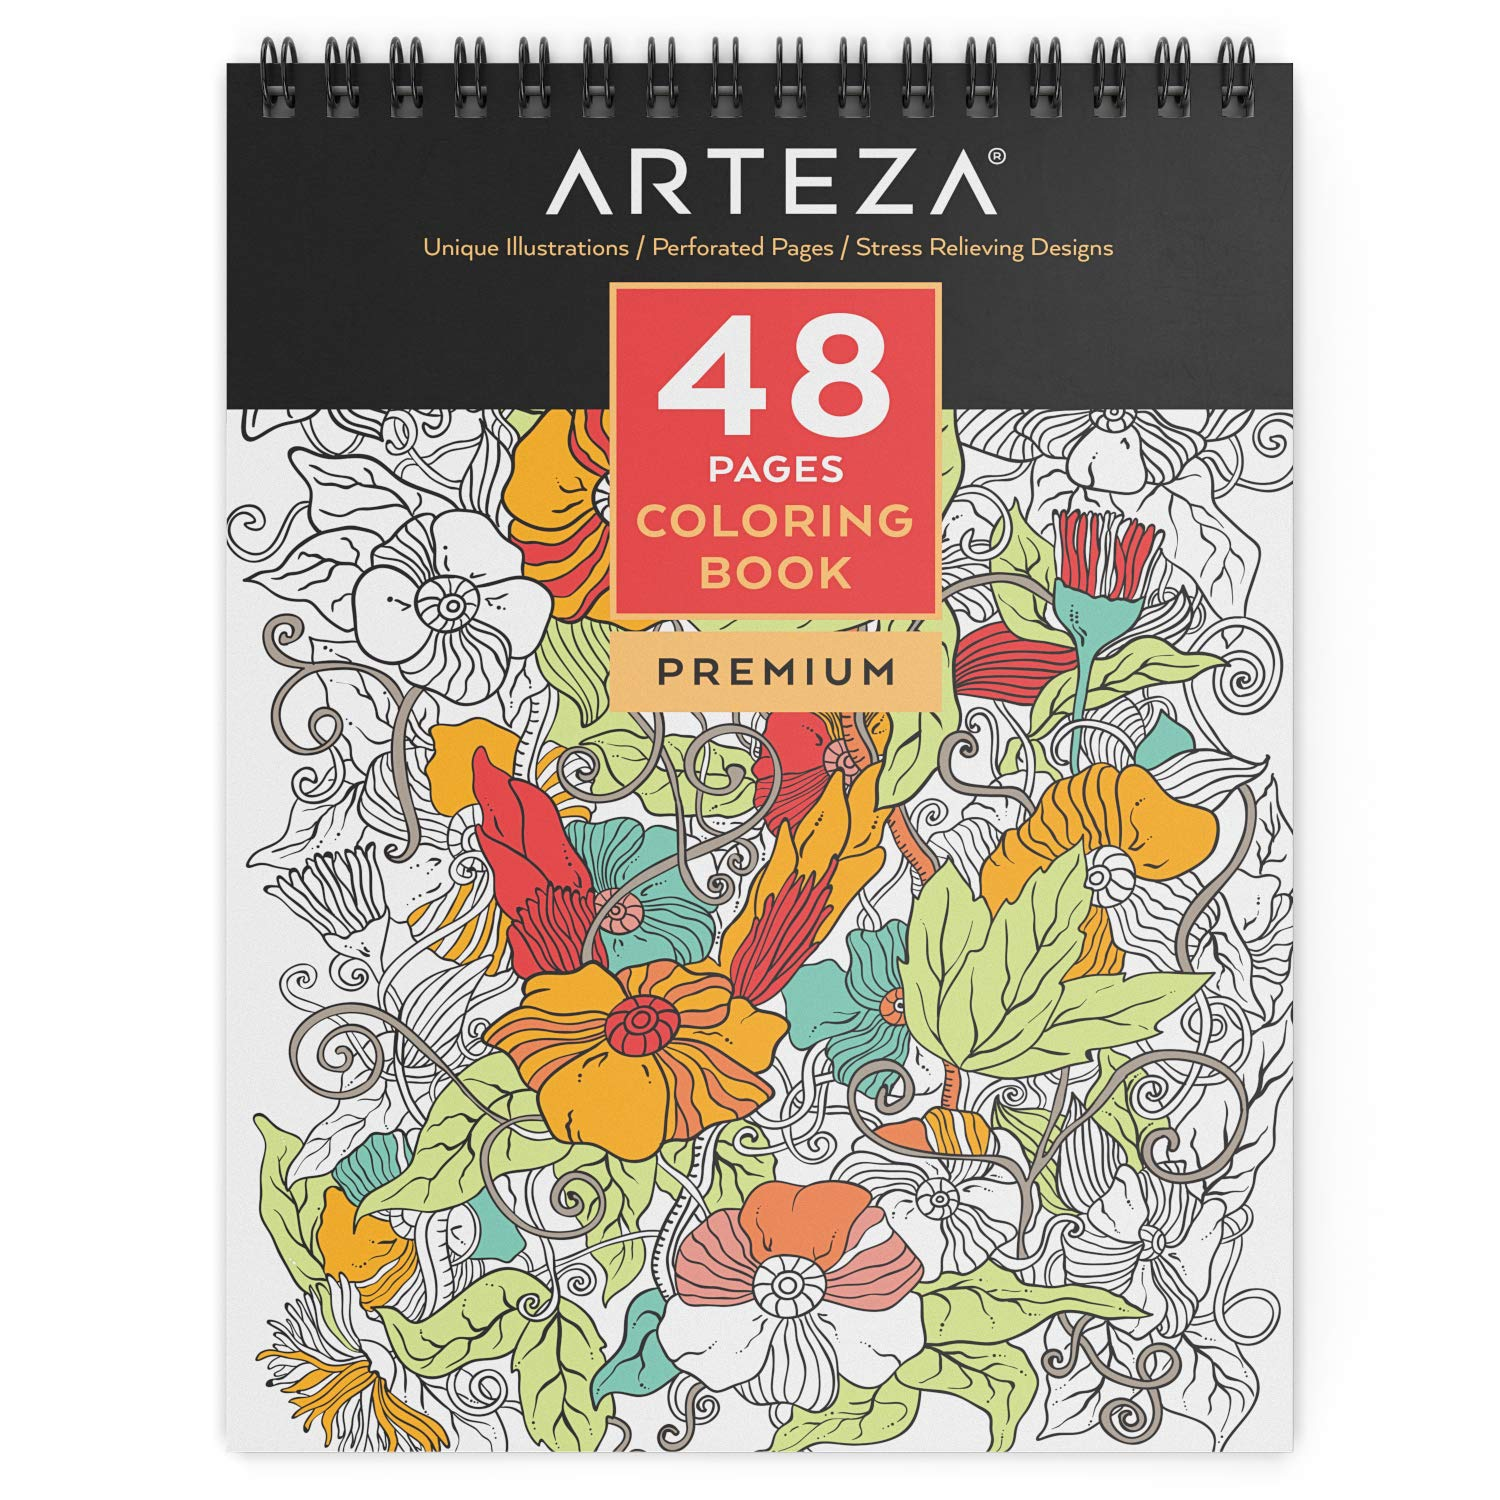 ARTEZA Adult Spiral Bound Coloring Book, 48 Pages, Perfect for Stress Relief by ARTEZA